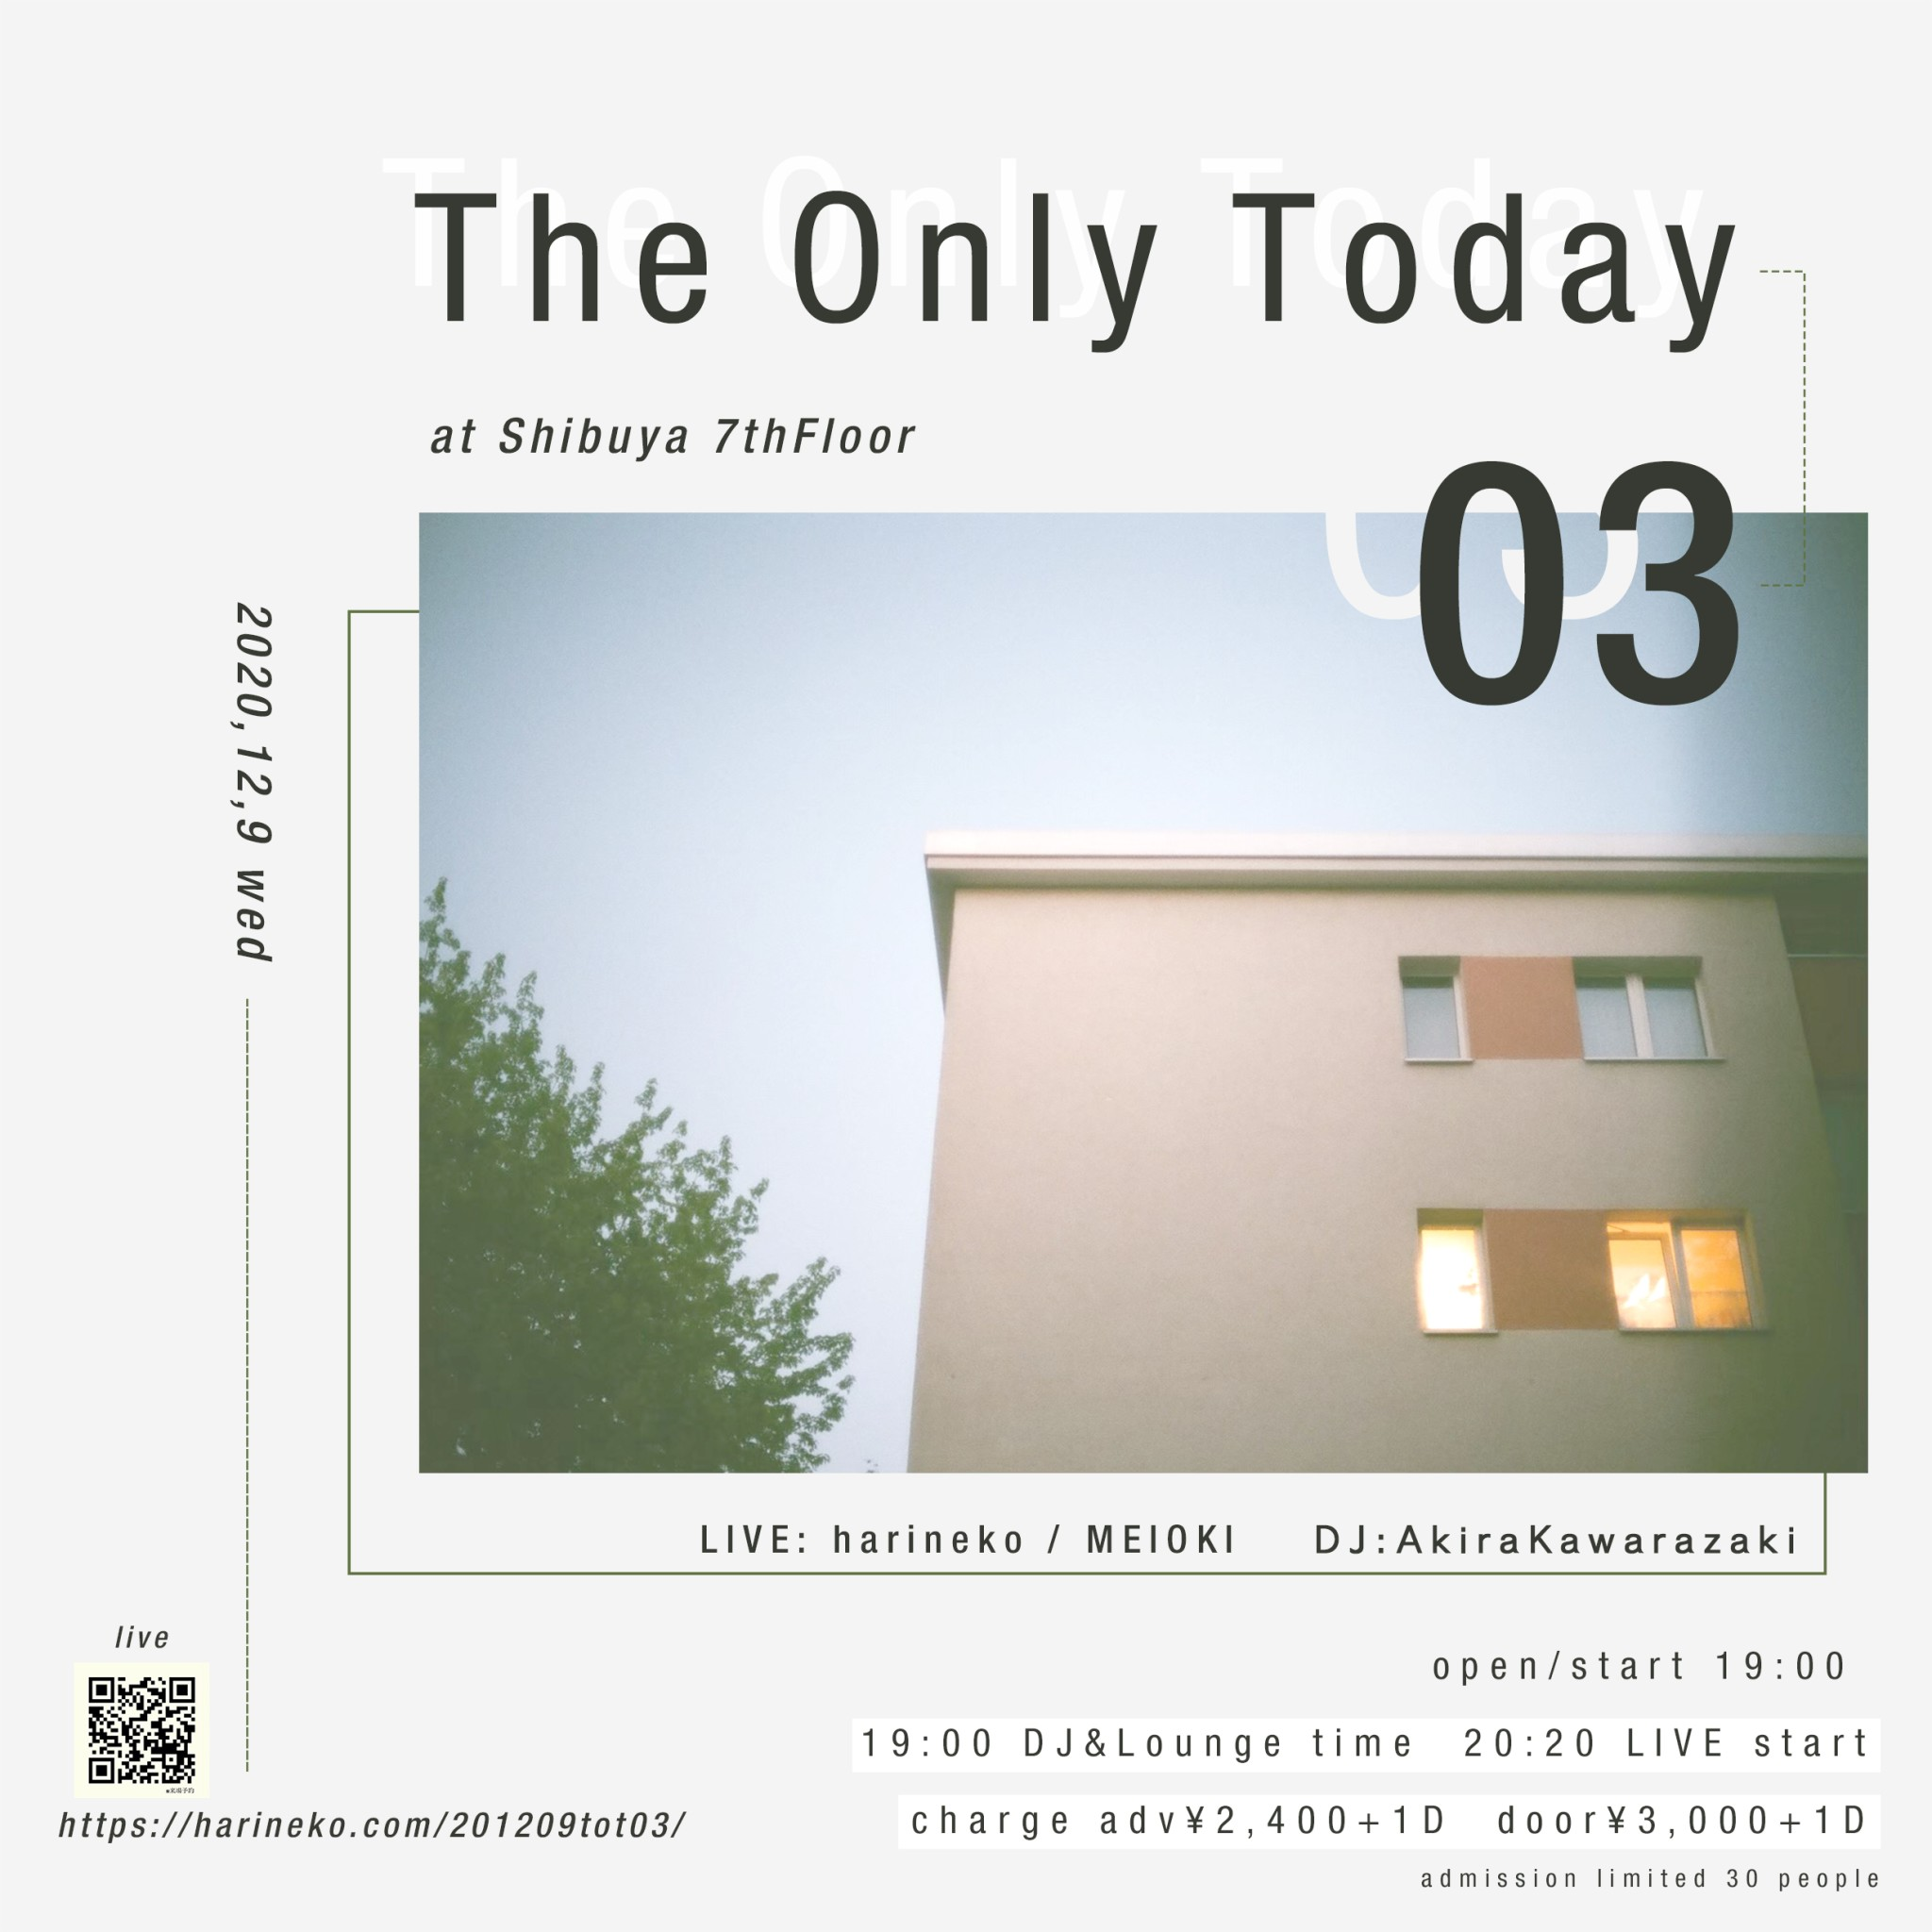 The Only Today 03 at Shibuya 7thFloor